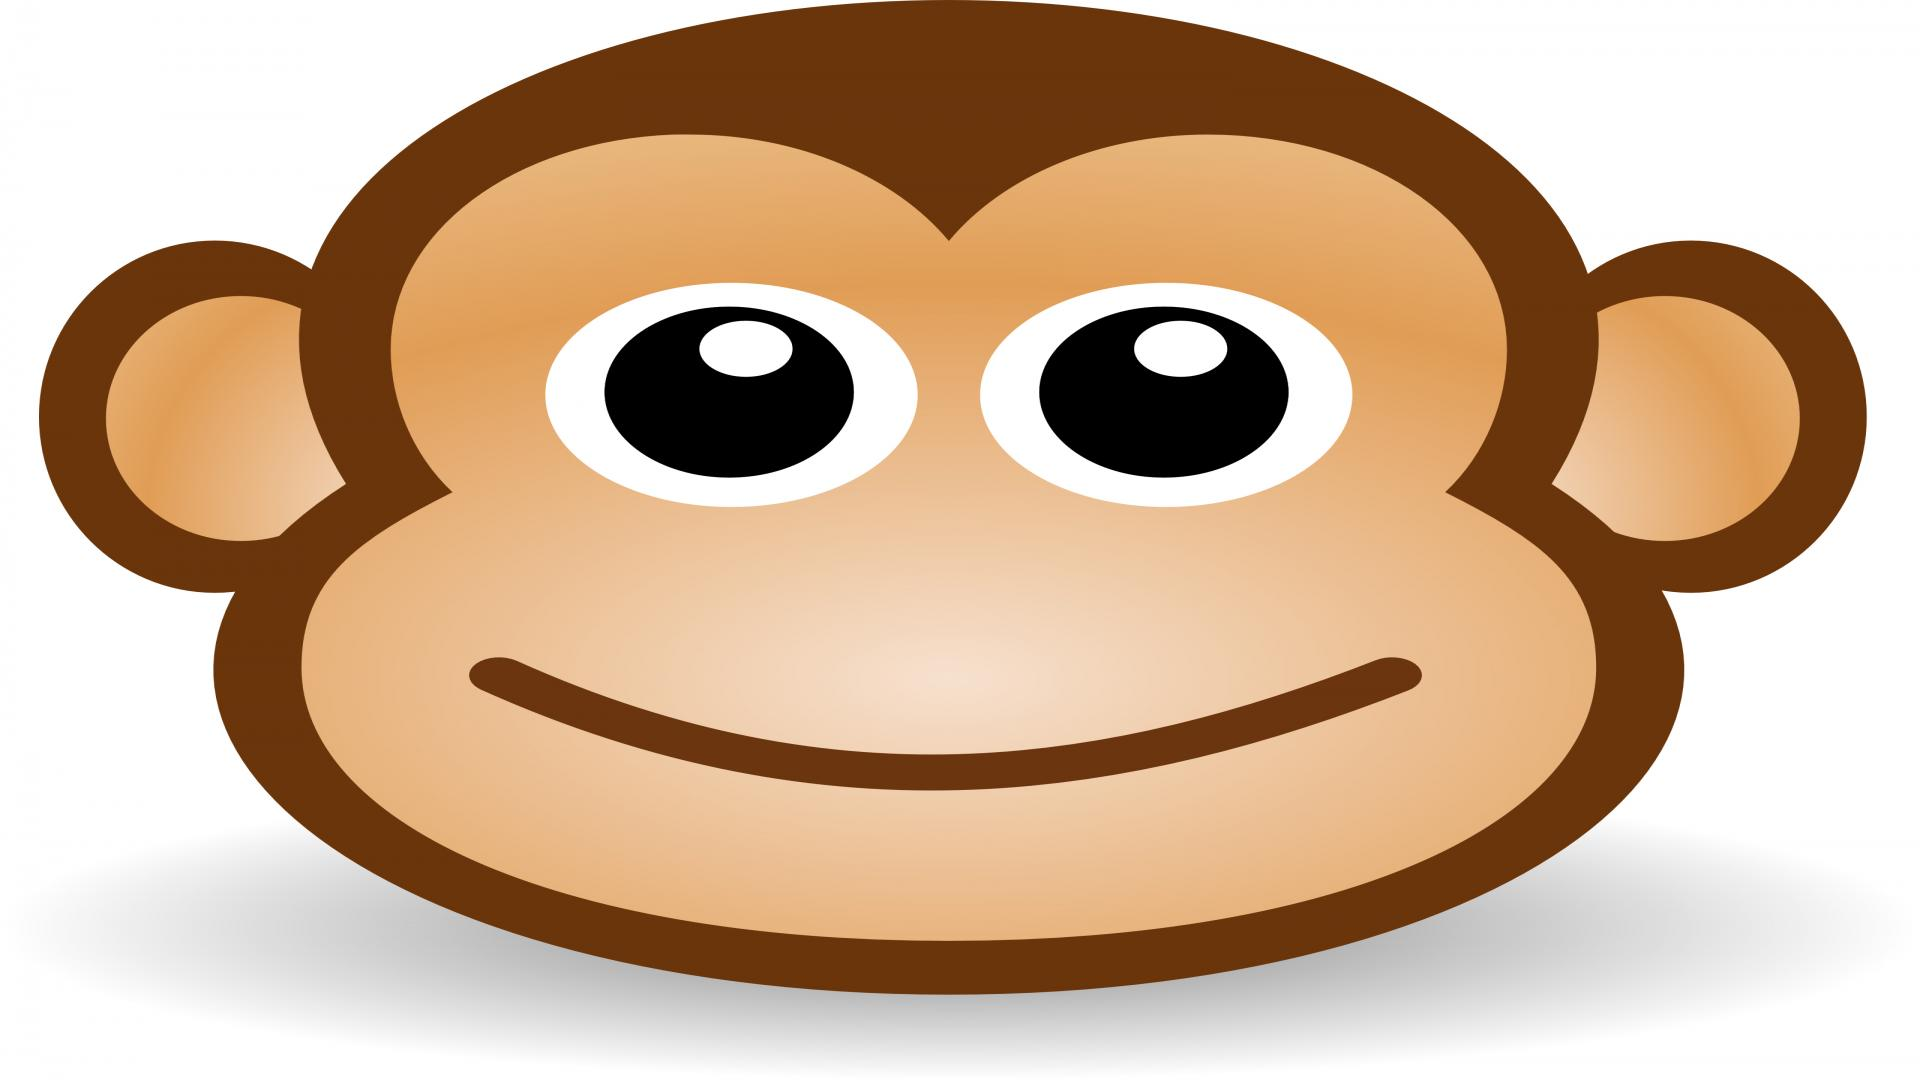 japanese wallpaper cartoon monkey - photo #18